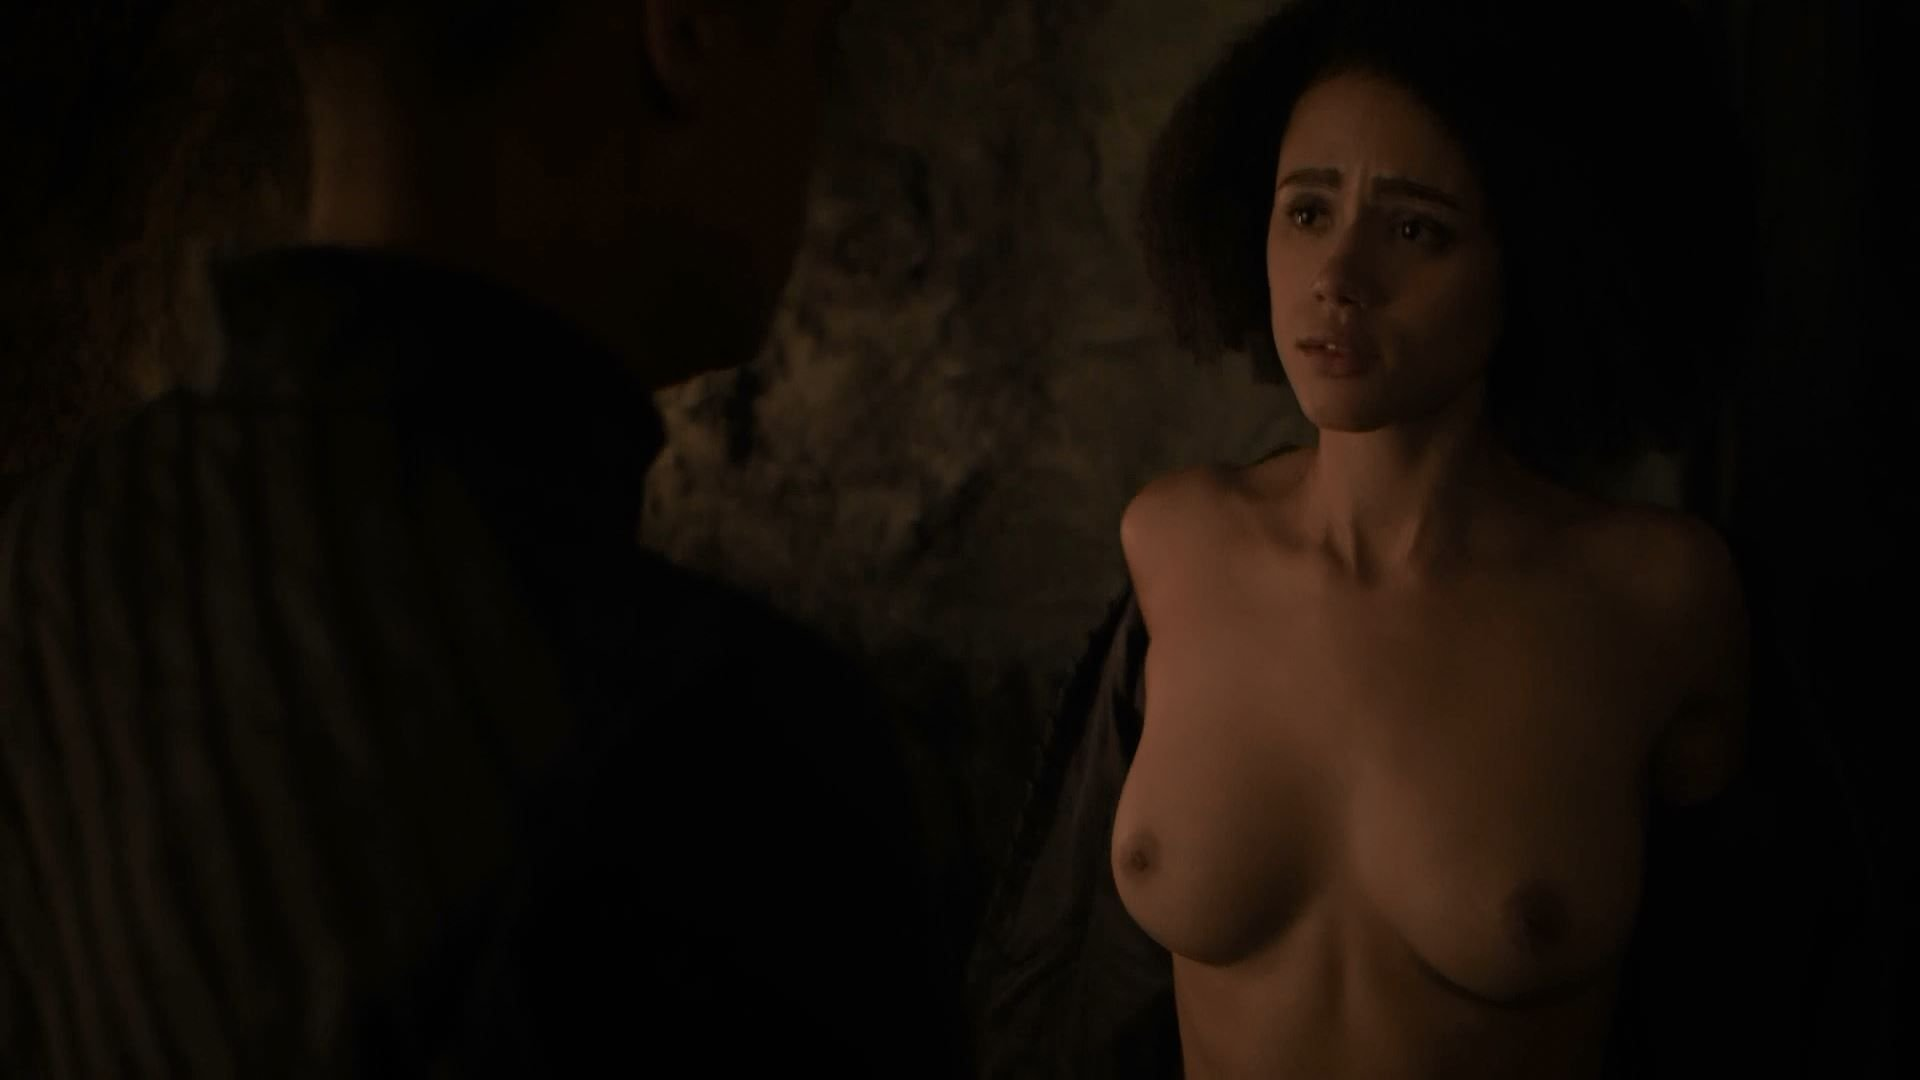 game of thrones nudes